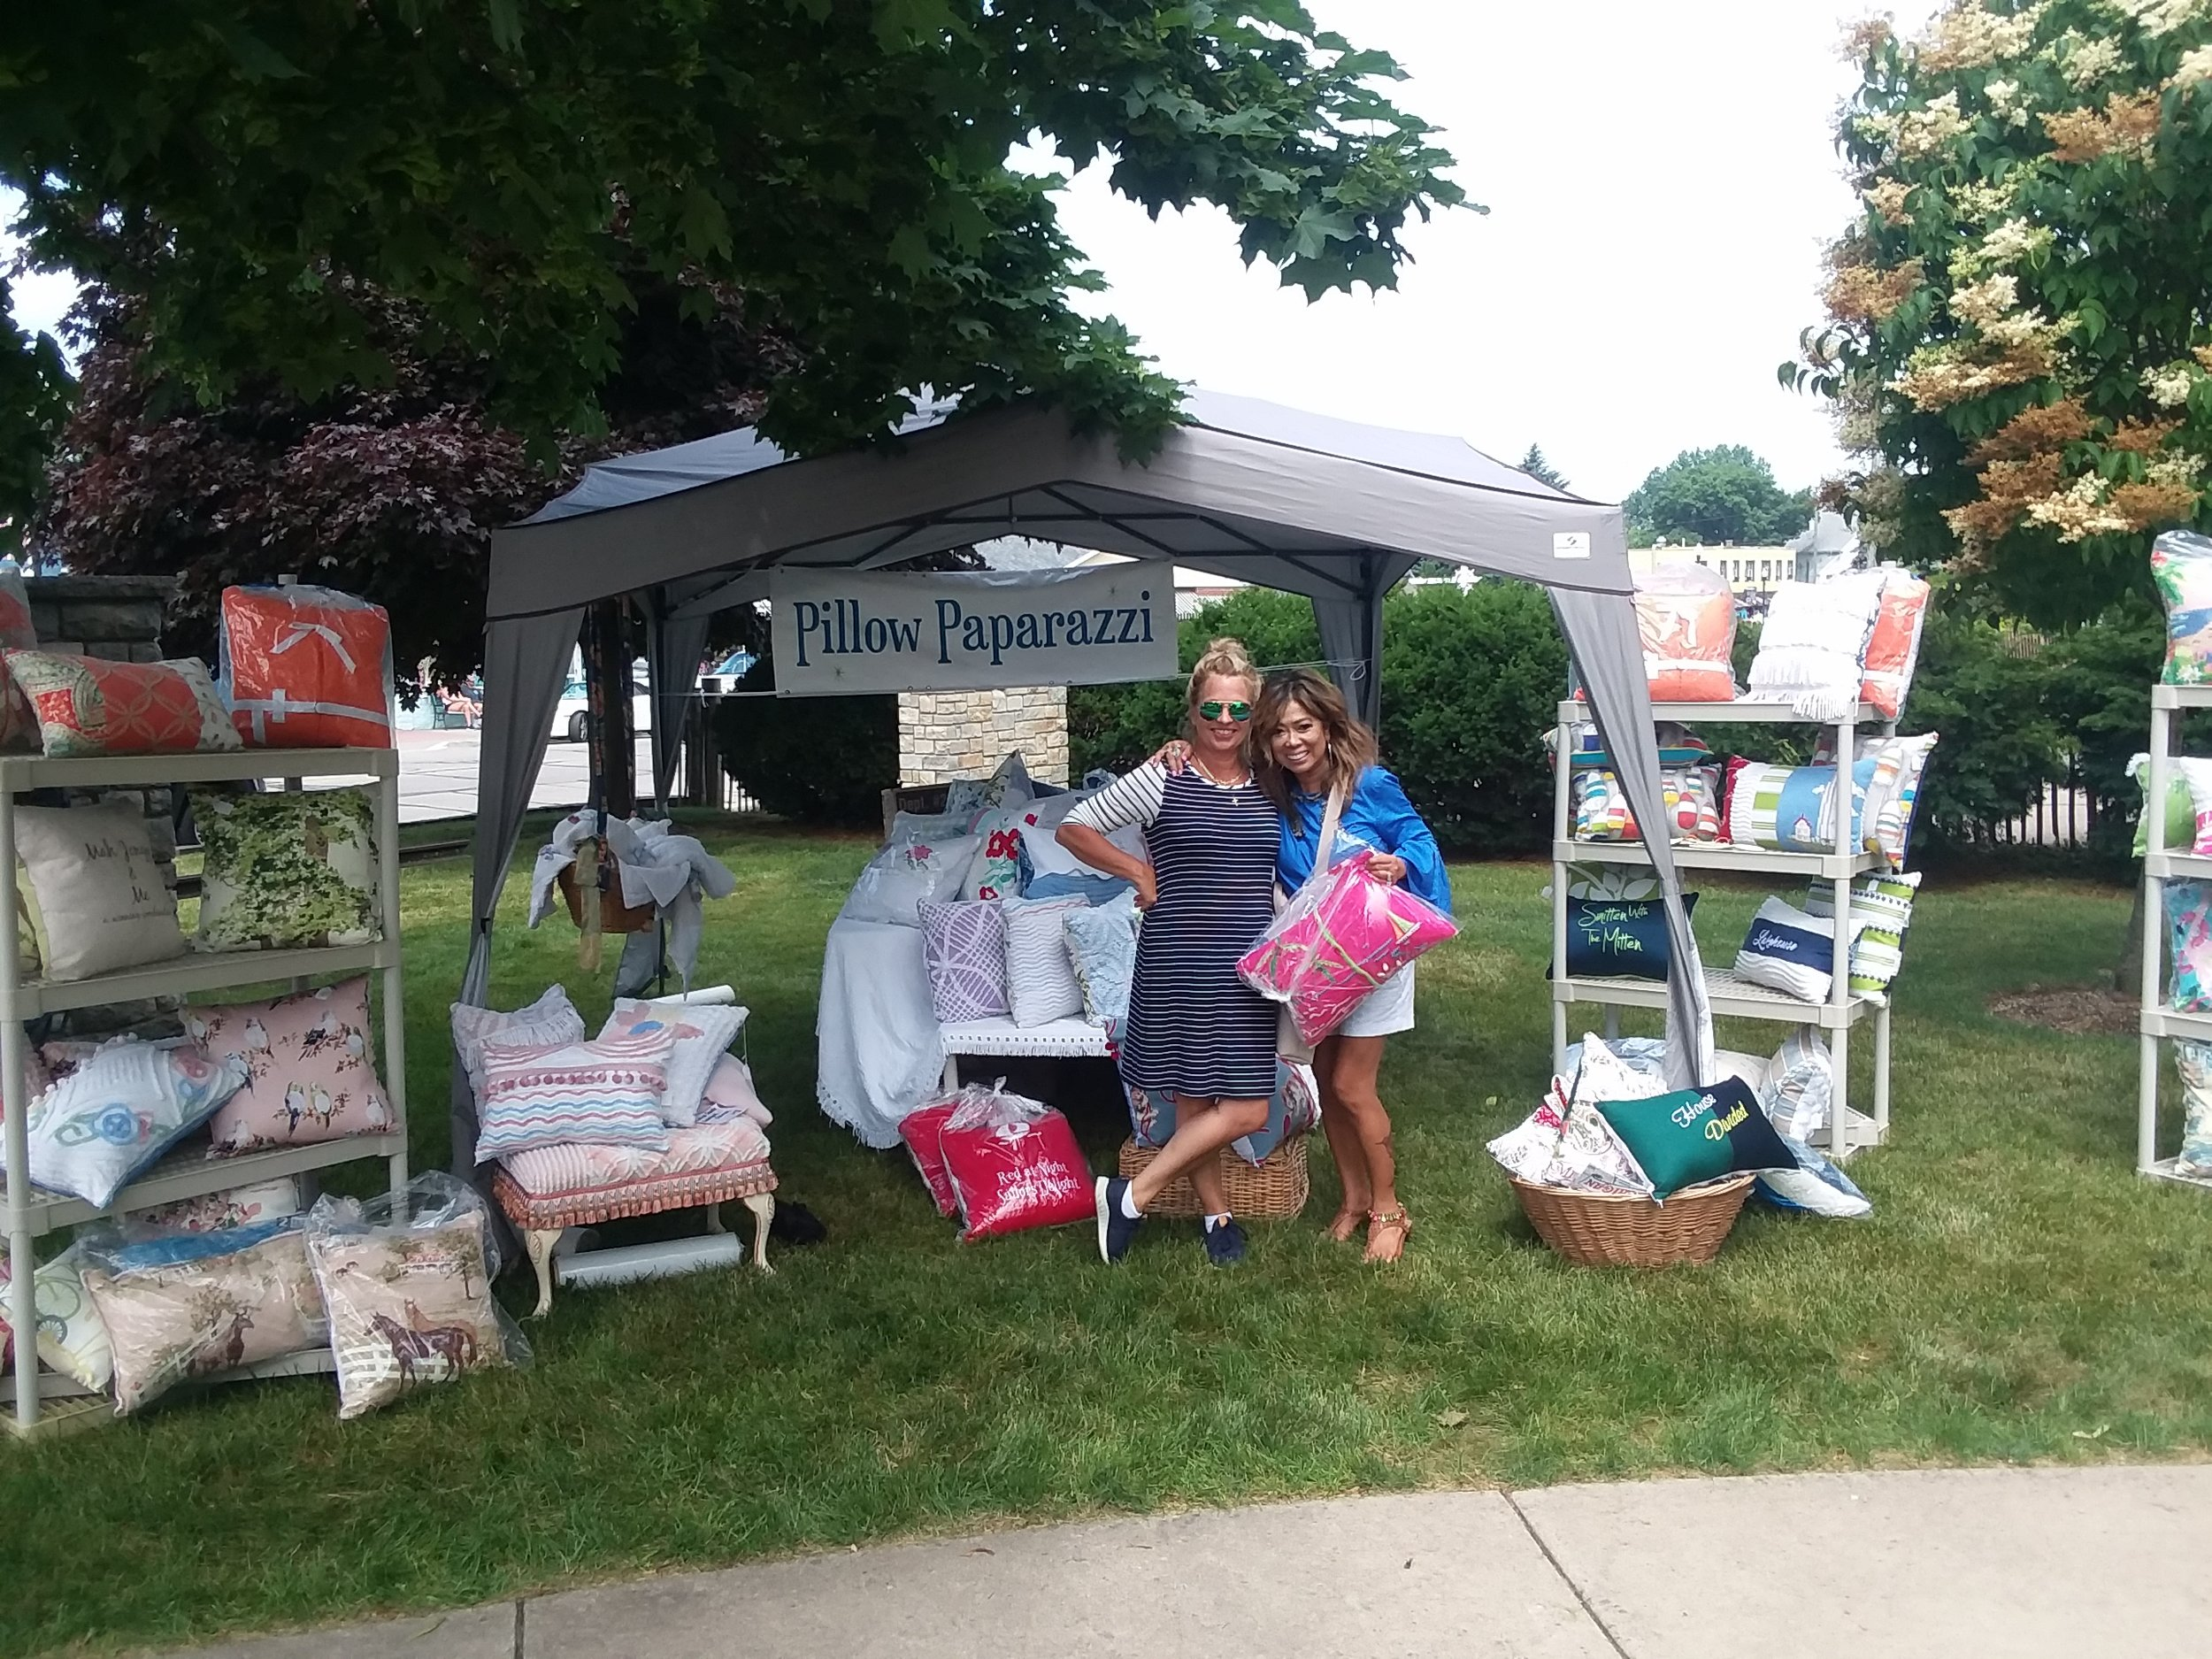 Western Region Winner: Market on Main in Caseville has had great success so far! Bringing vendors, performers, and entertainment for kids to downtown Caseville